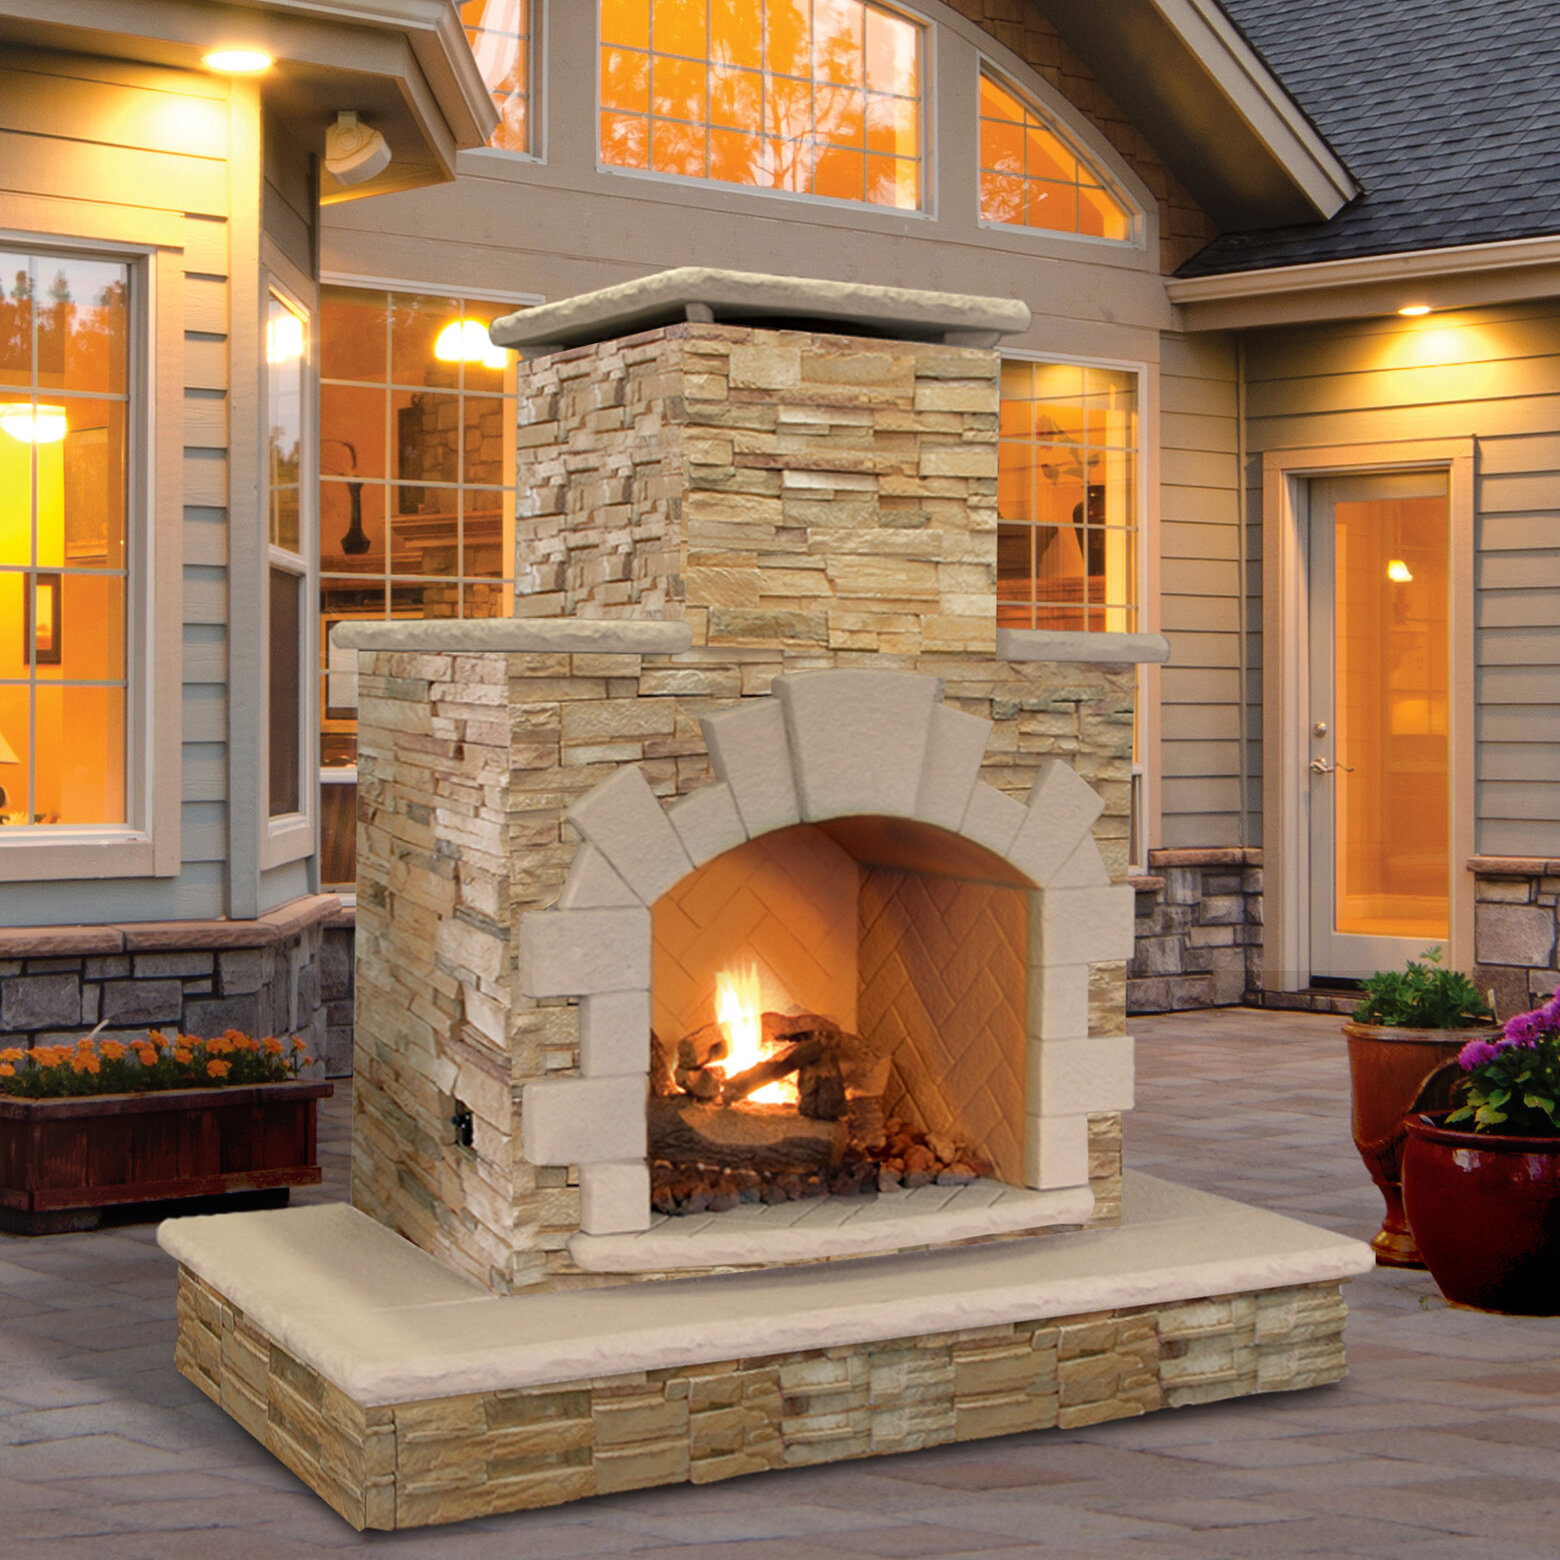 calflame natural stone propane gas outdoor fireplace ebay. Black Bedroom Furniture Sets. Home Design Ideas